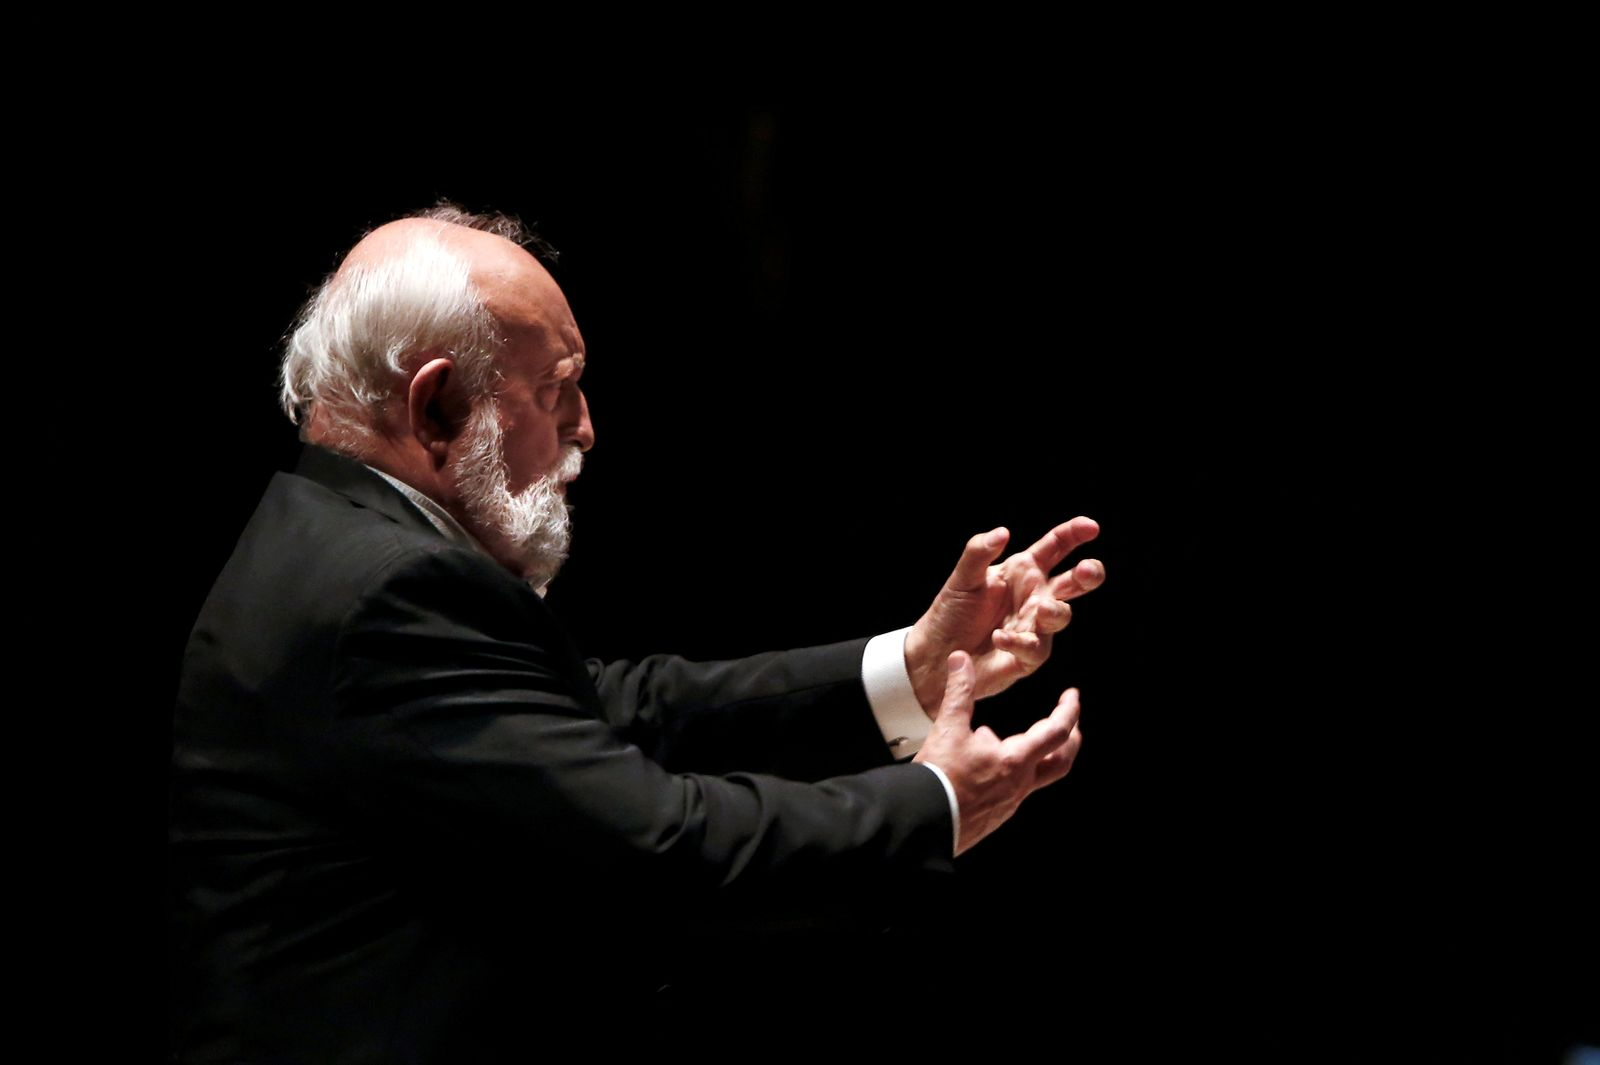 FILE PHOTO: Polish composer Krzysztof Penderecki conducts the Israel Philharmonic Orchestra in Tel Aviv